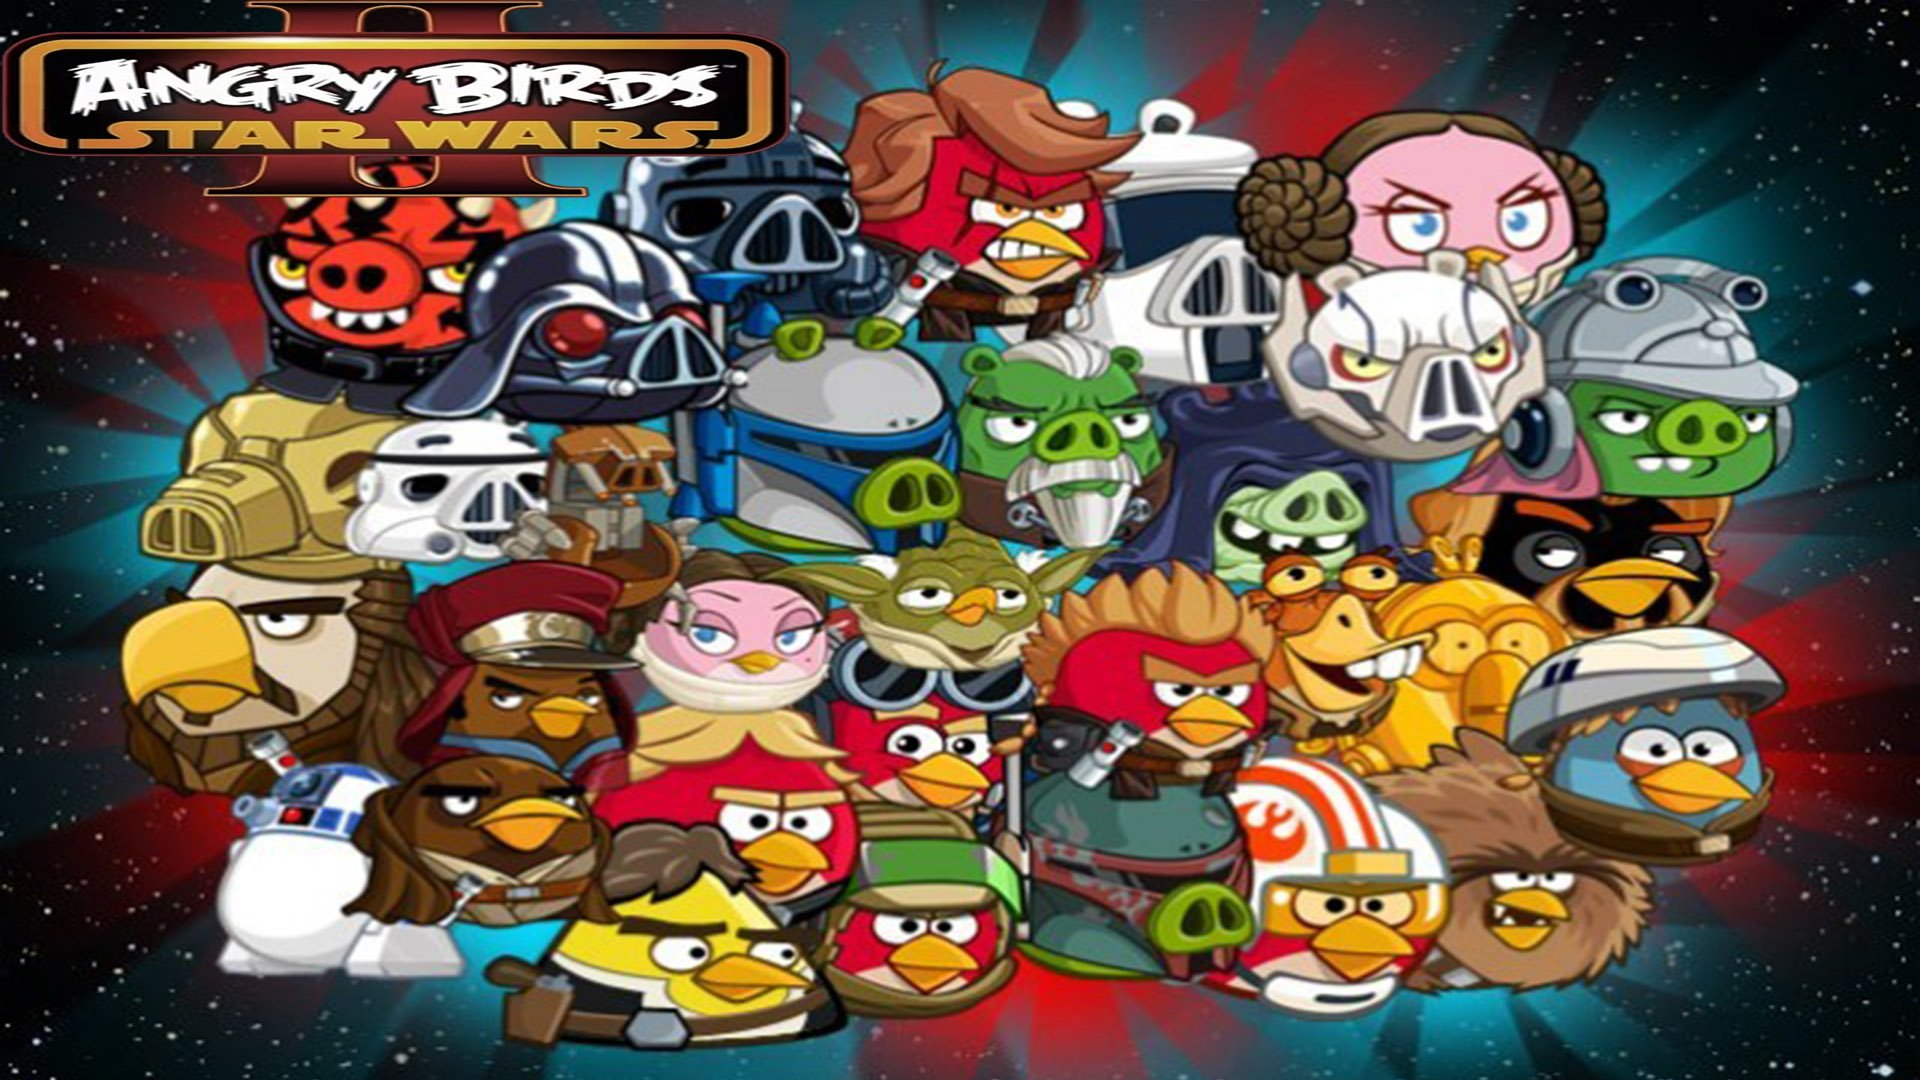 Angry birds star wars 2 fond d 39 cran hd arri re plan 1920x1080 id 530931 wallpaper abyss - Telecharger angry birds star wars 2 ...